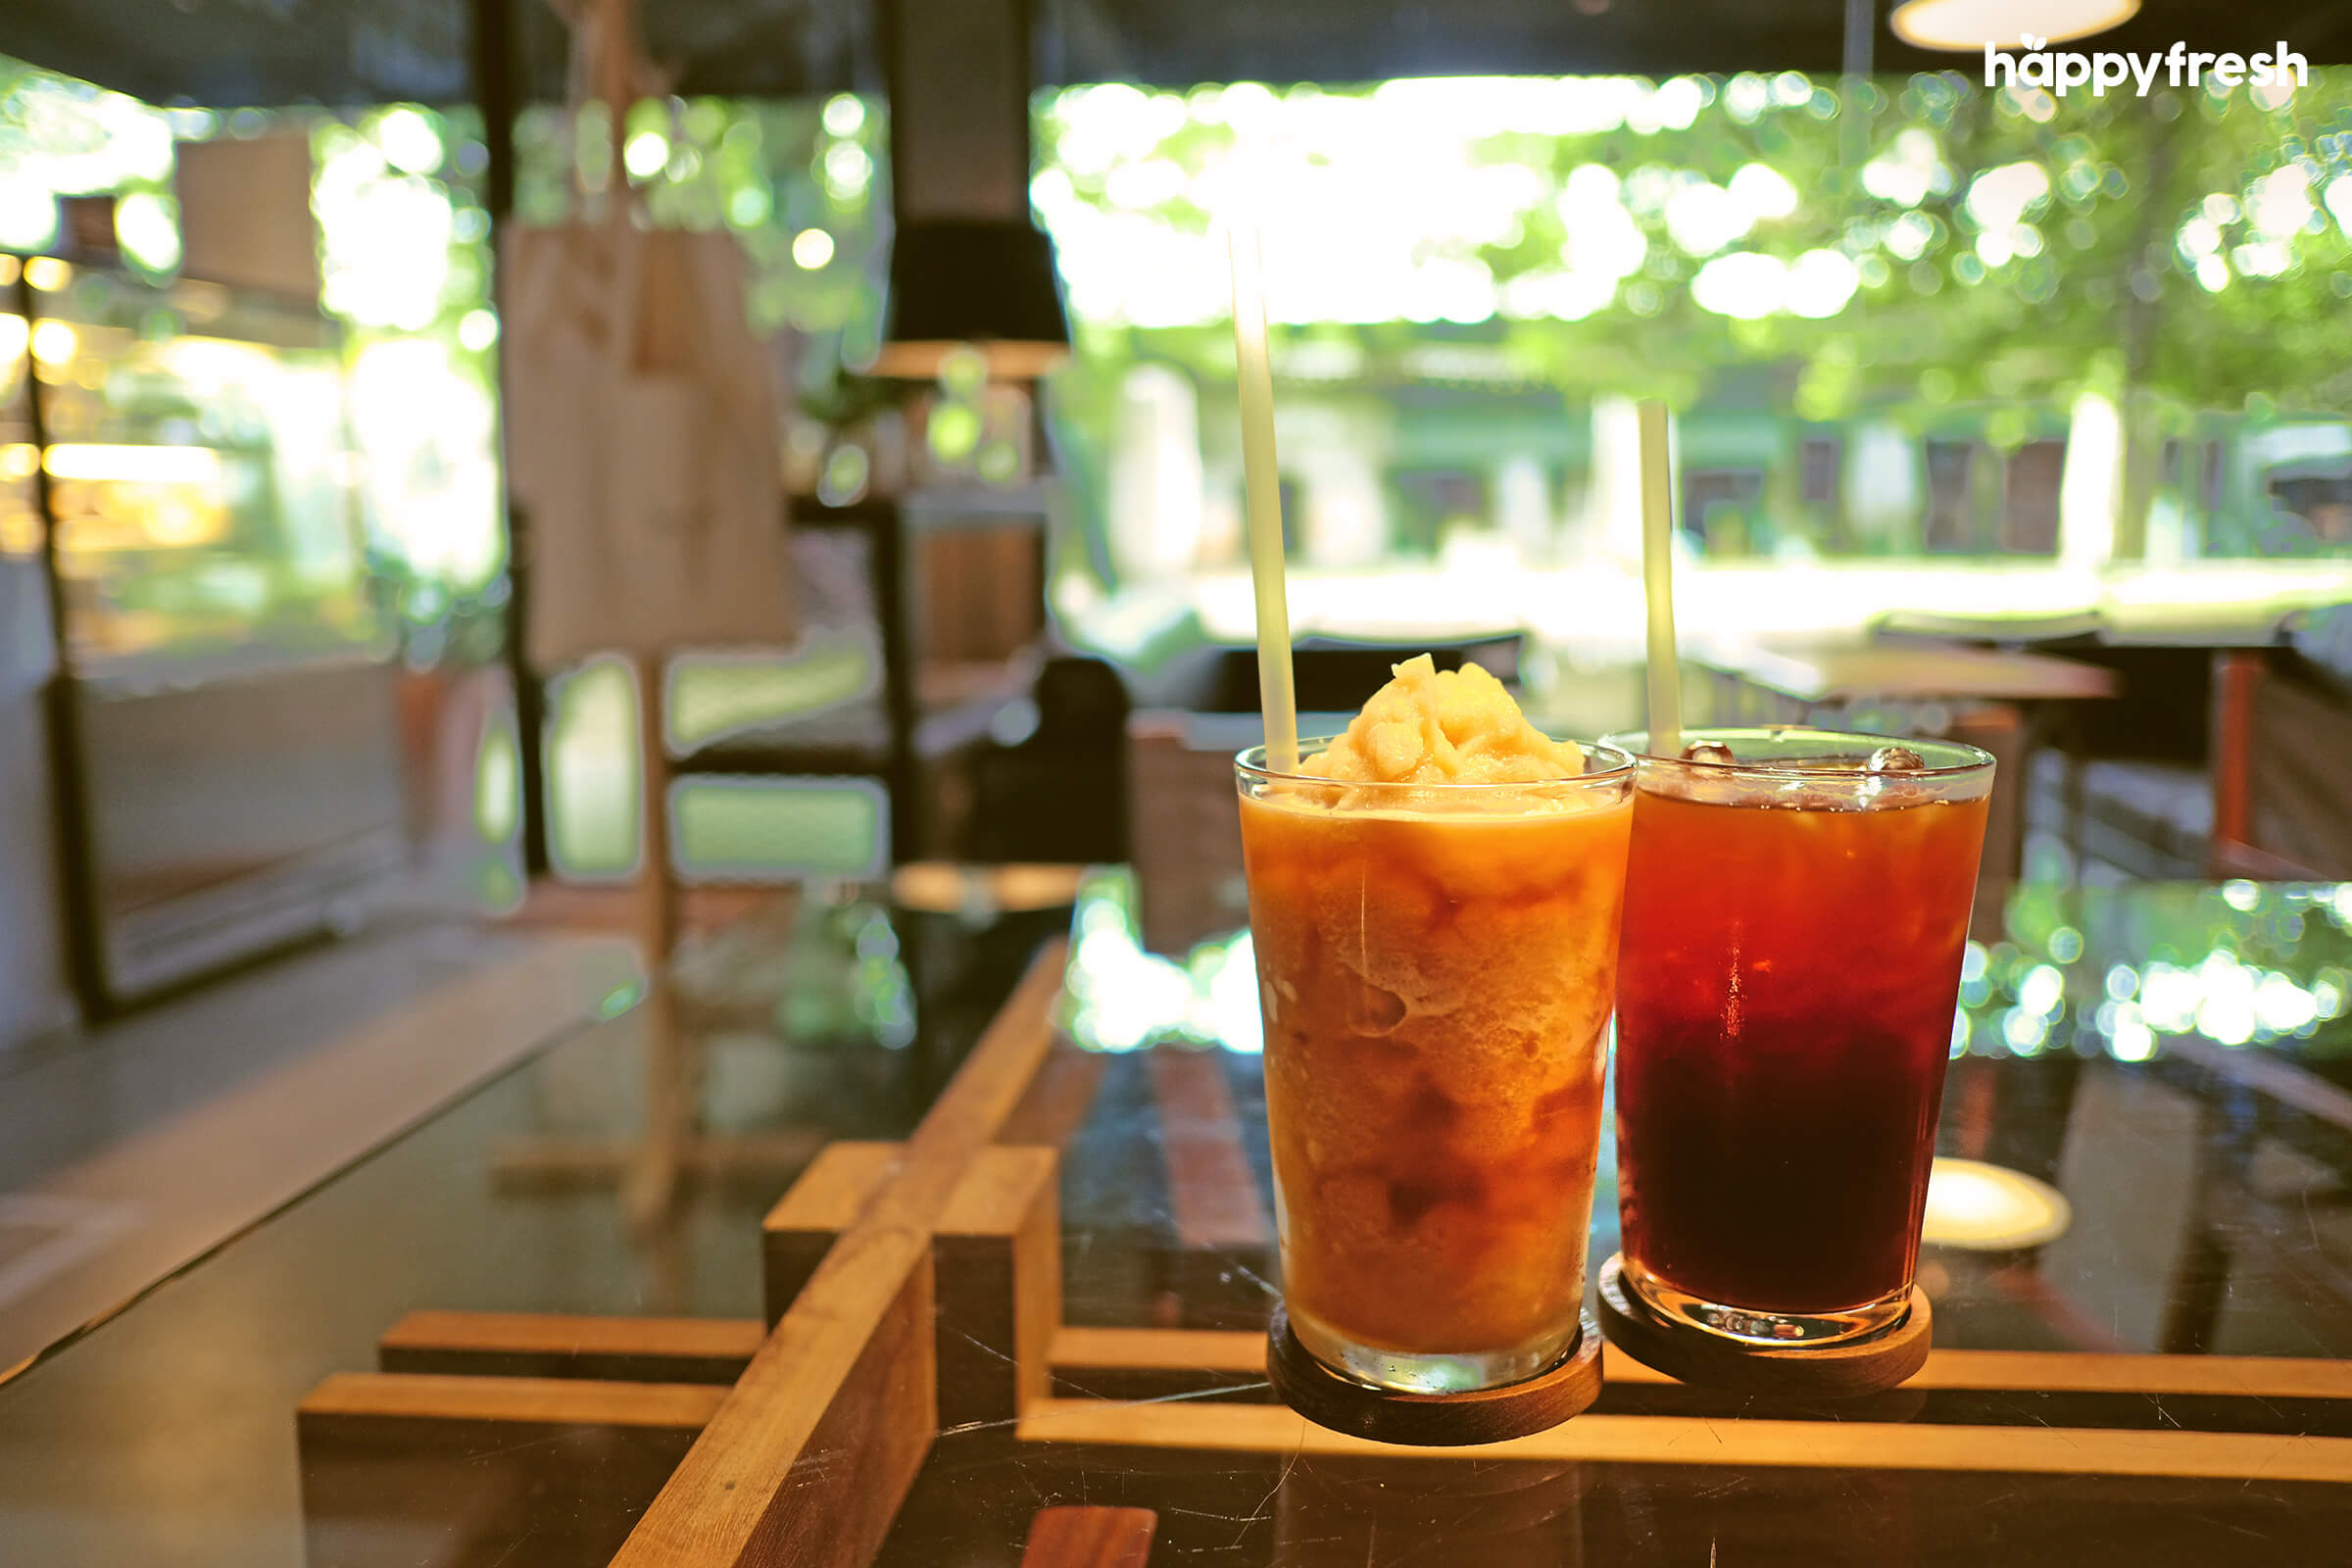 HappyFresh_Review_5_Cafes_Bookstores_In_Bangkok_Library_Cafe_Drinks